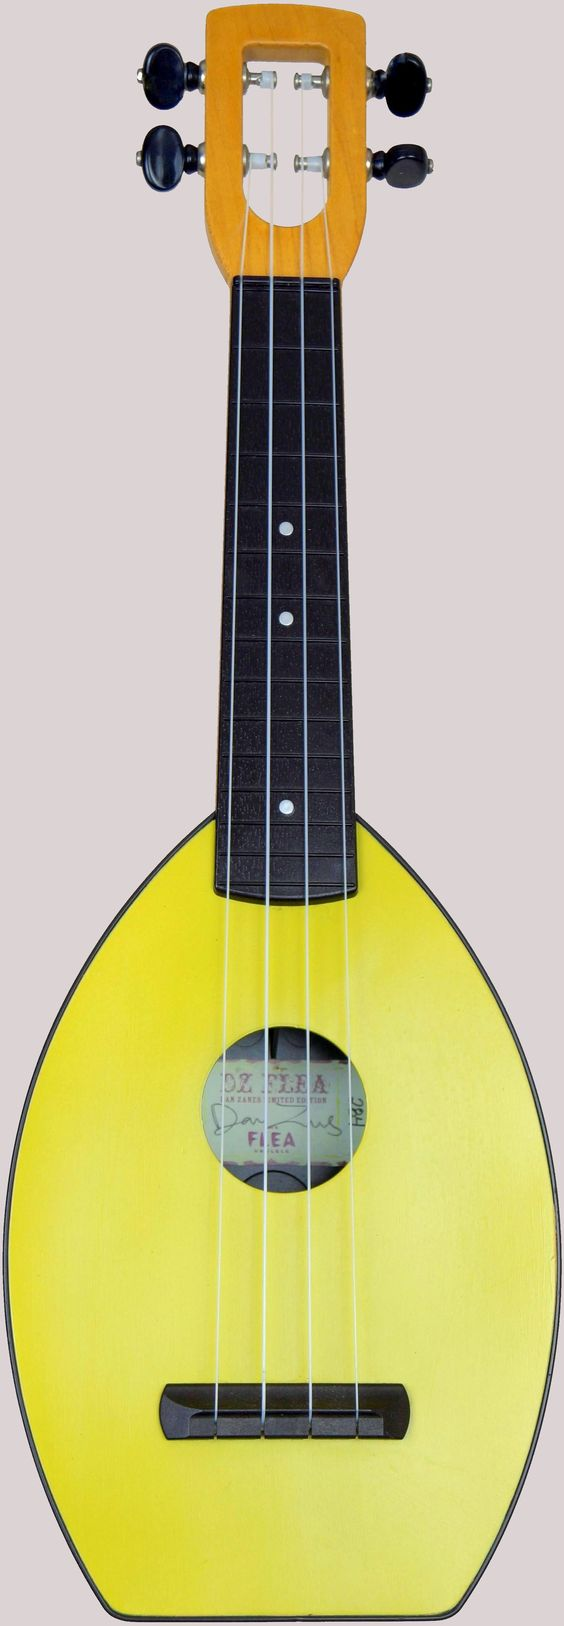 Magic Fluke Limon Flea Ukulele Soprano